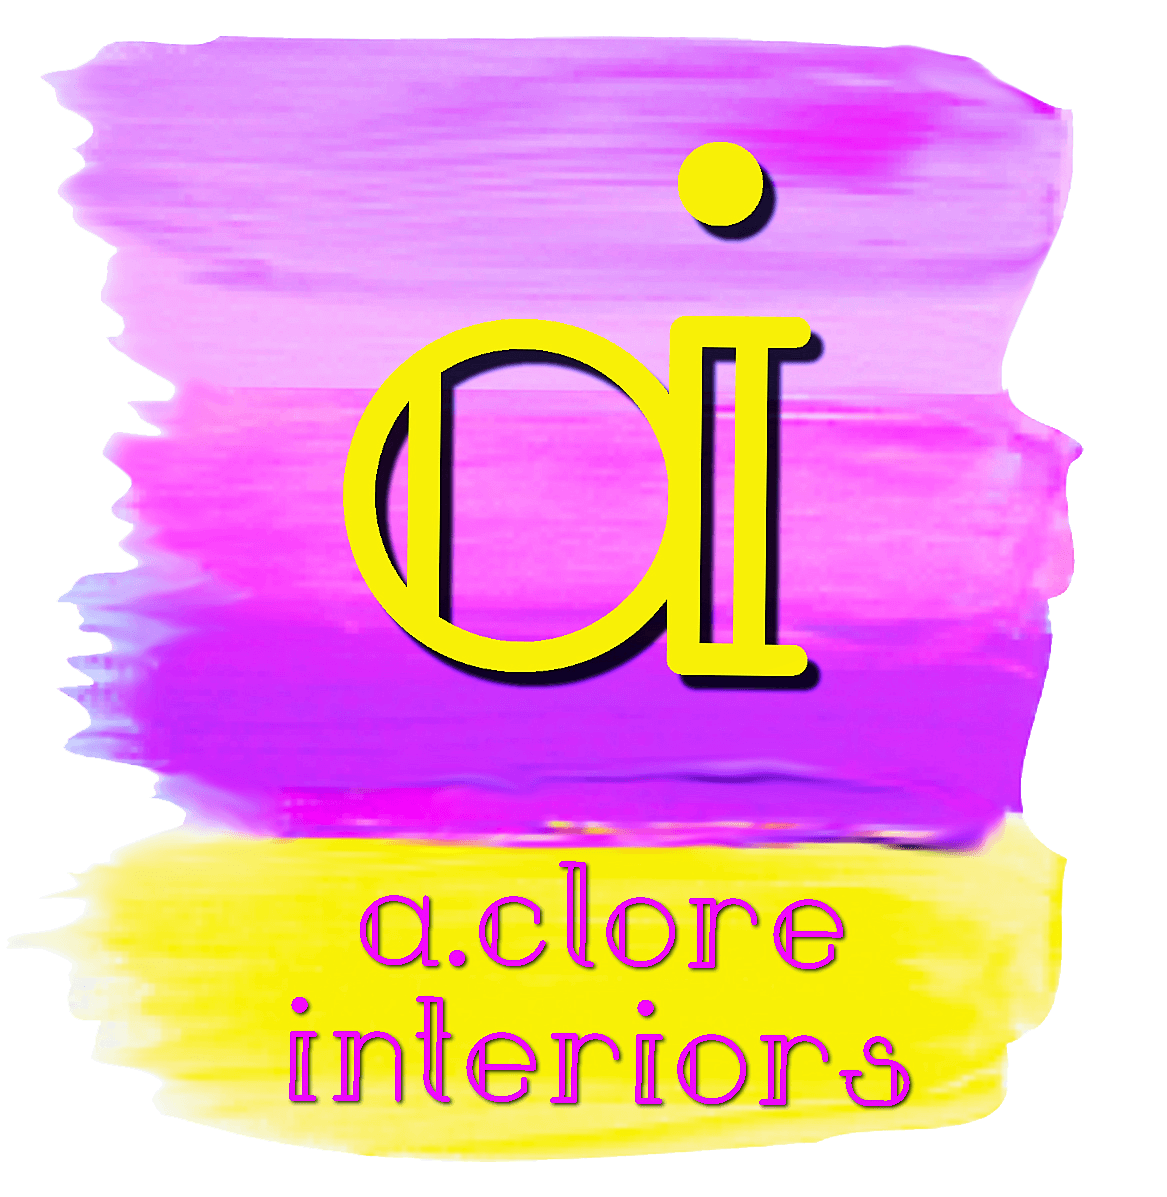 Exterior-House-Colors-Can-Help-Sell-Your-Home - A.Clore Interiors